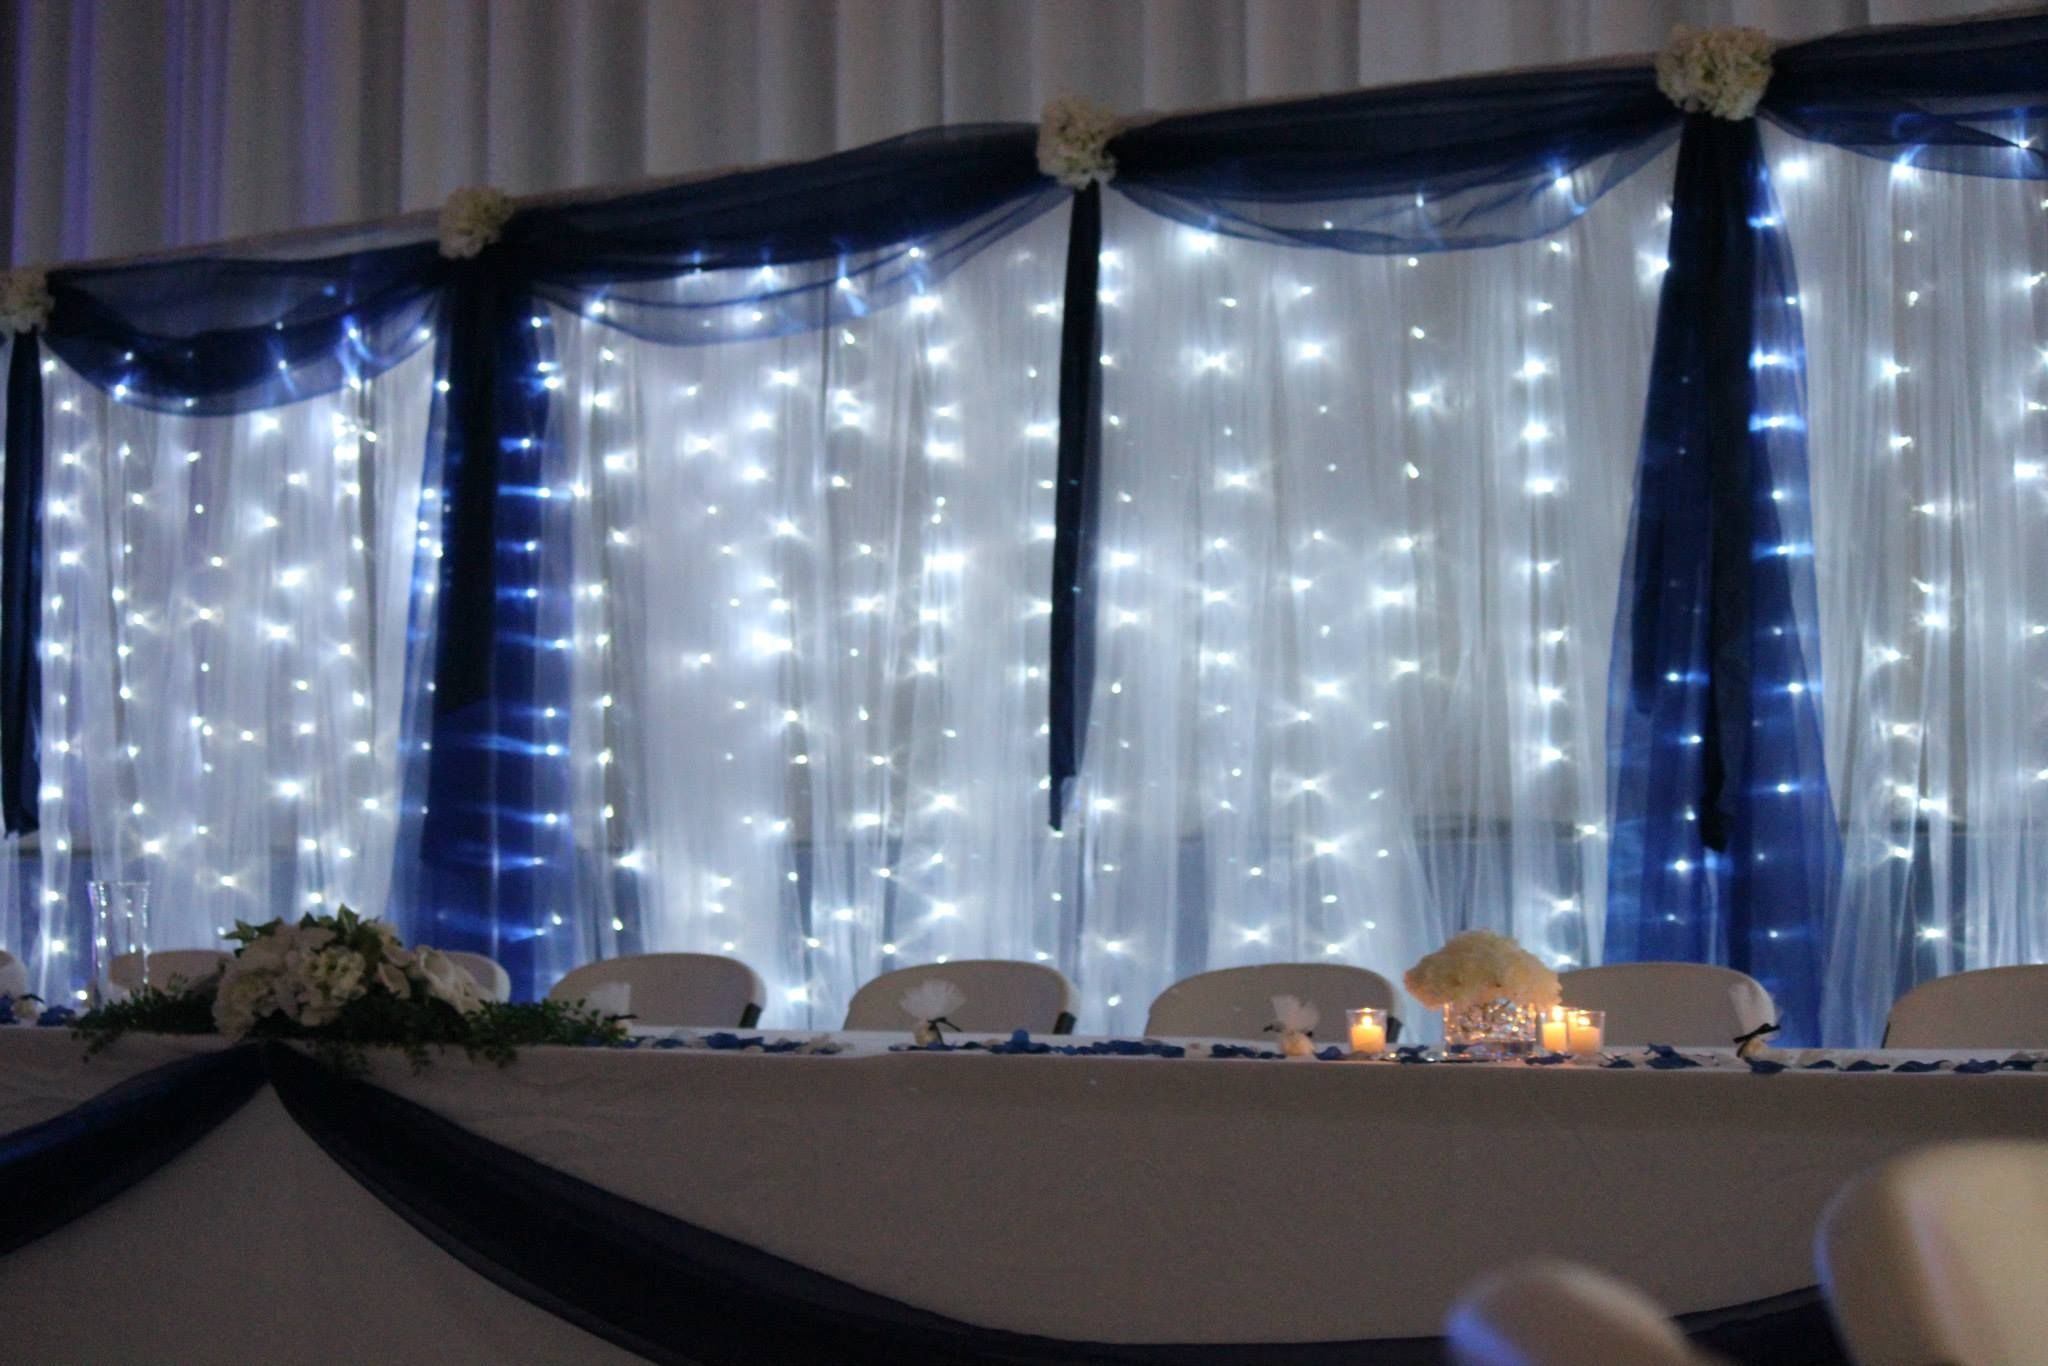 Wedding decorations tulle and lights  Possibly how twinkle lights will look under dark blue tulle